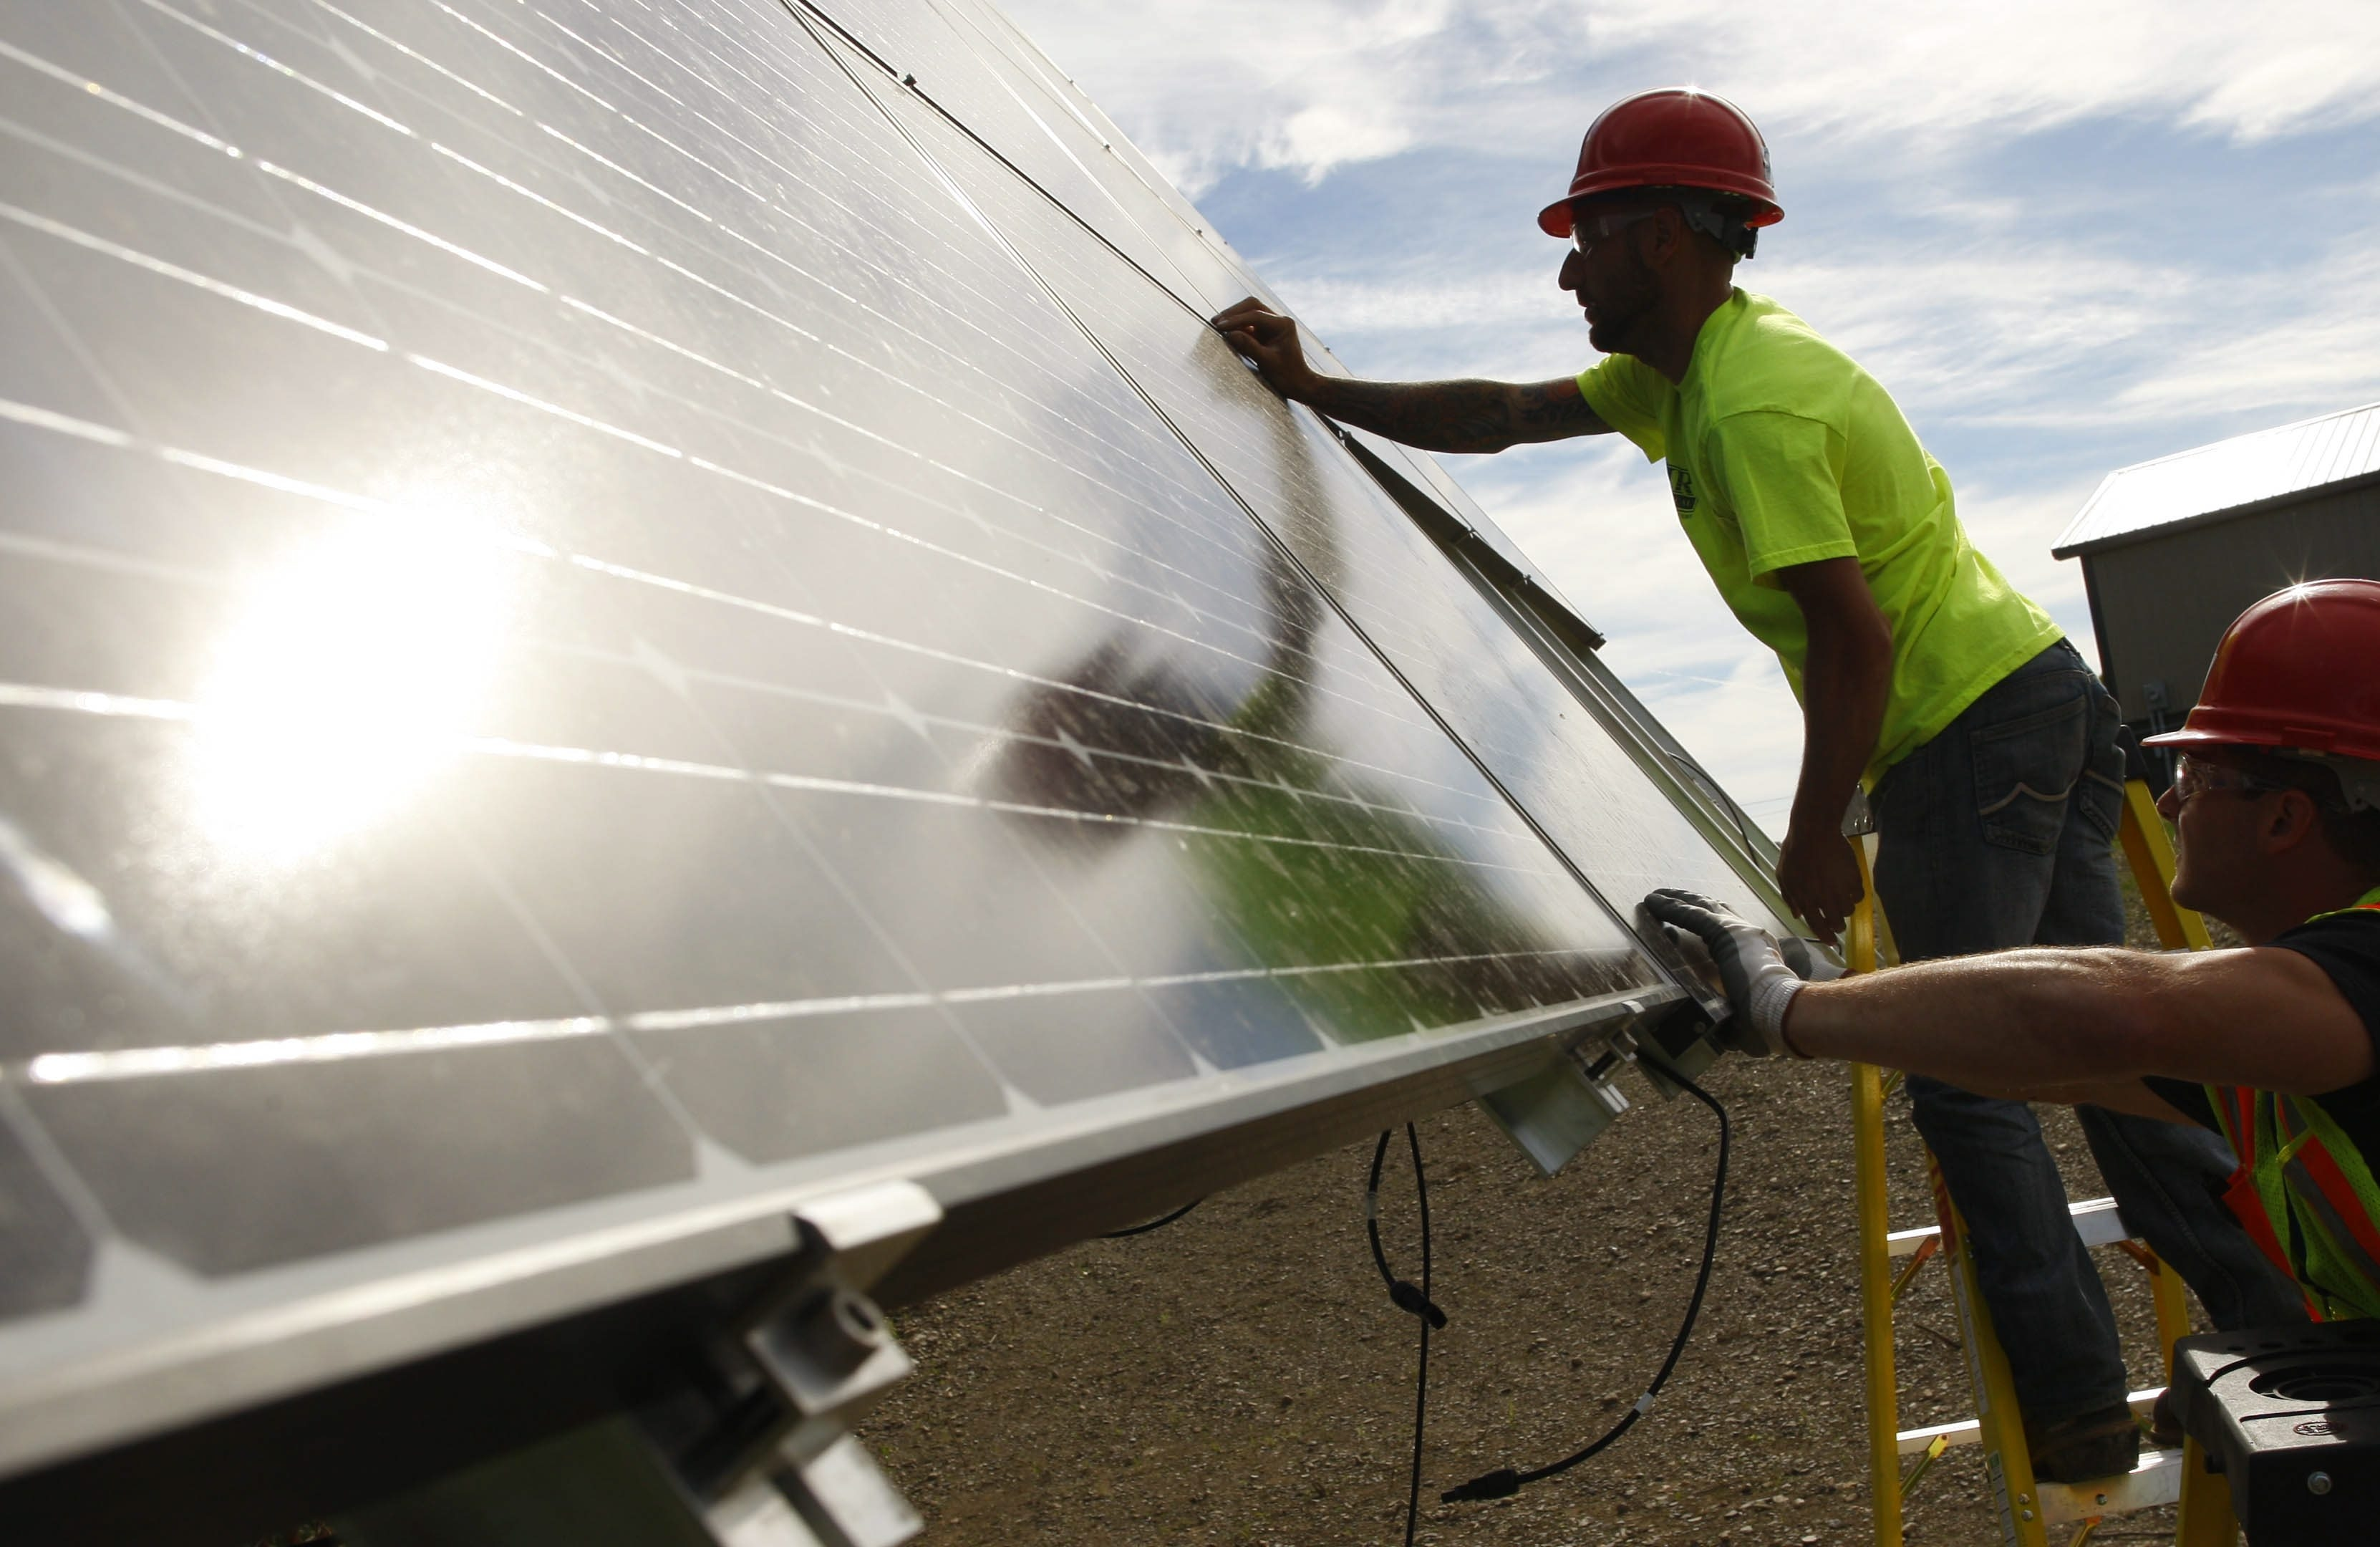 """Electrician Joe Kilijanski, left, and Edward Sarcione of CIR Electrical Construction Corp. install an array of solar panels made by Silevo on a """"tracker"""" system that automatically follows the sun to optimize the system's performance at a residence in Marilla on June 20."""